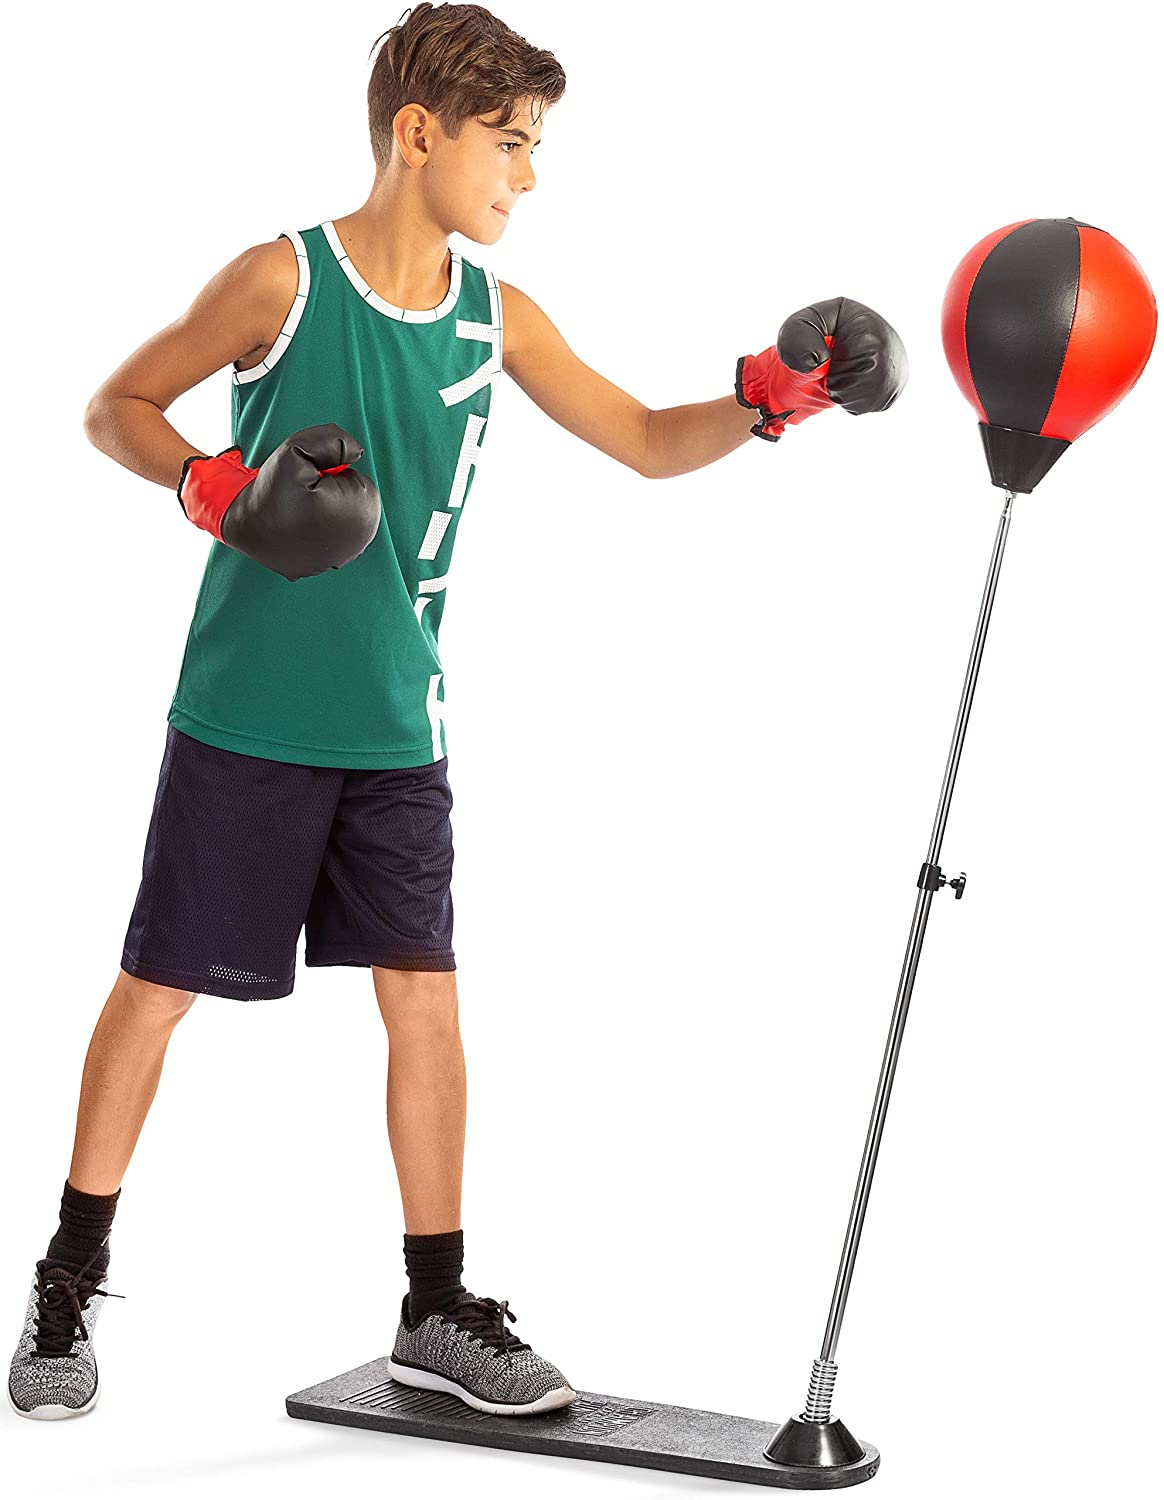 Kids uses Tech Tools Punching Bag with Stand for Kids, punching bag for kids